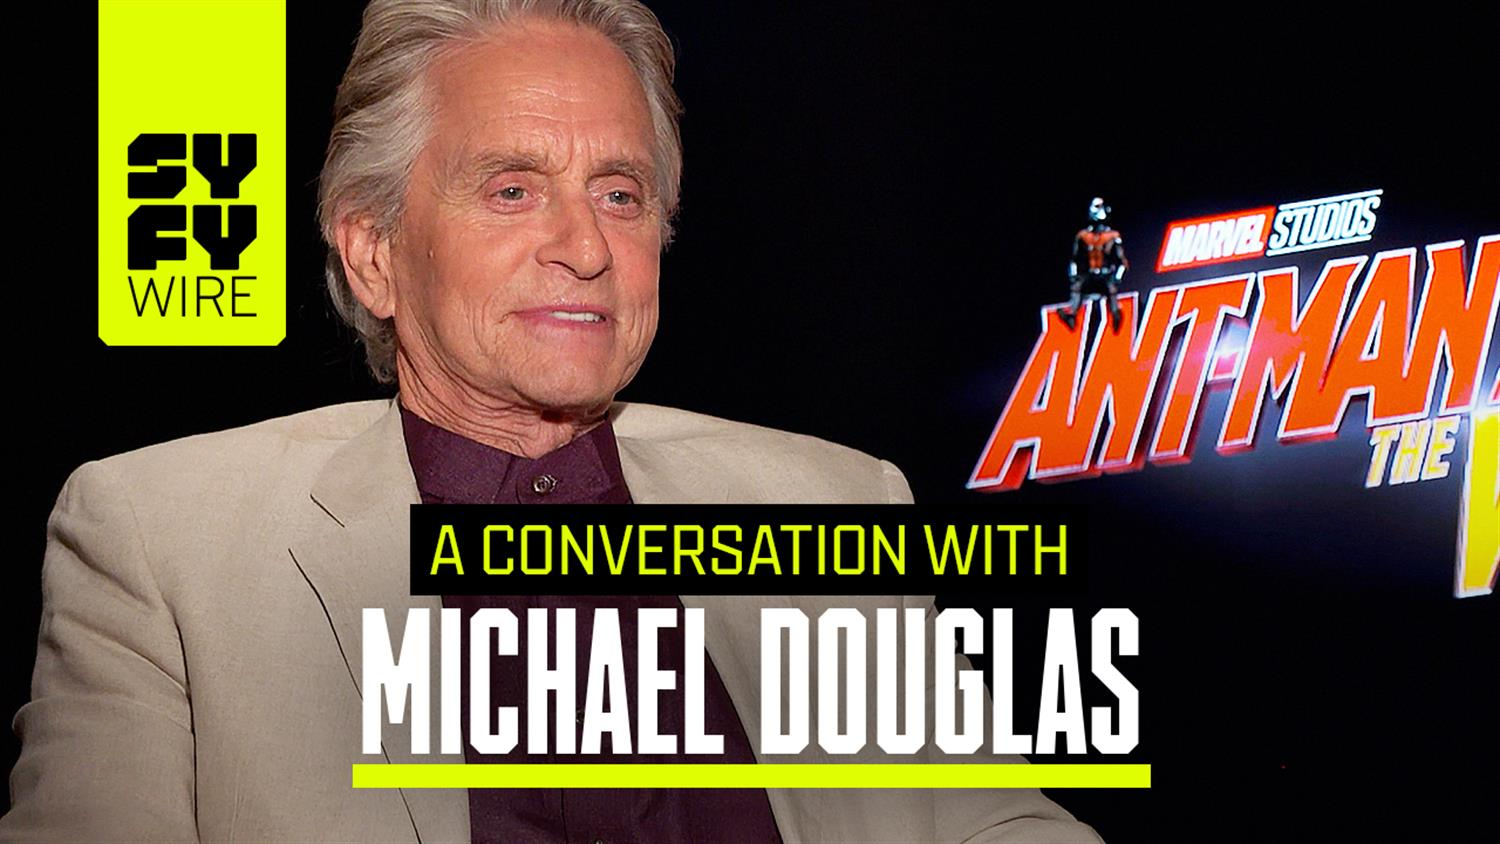 Michael Douglas on Ant-Man and the Wasp: the Fandom of the MCU & Working on Green Screen